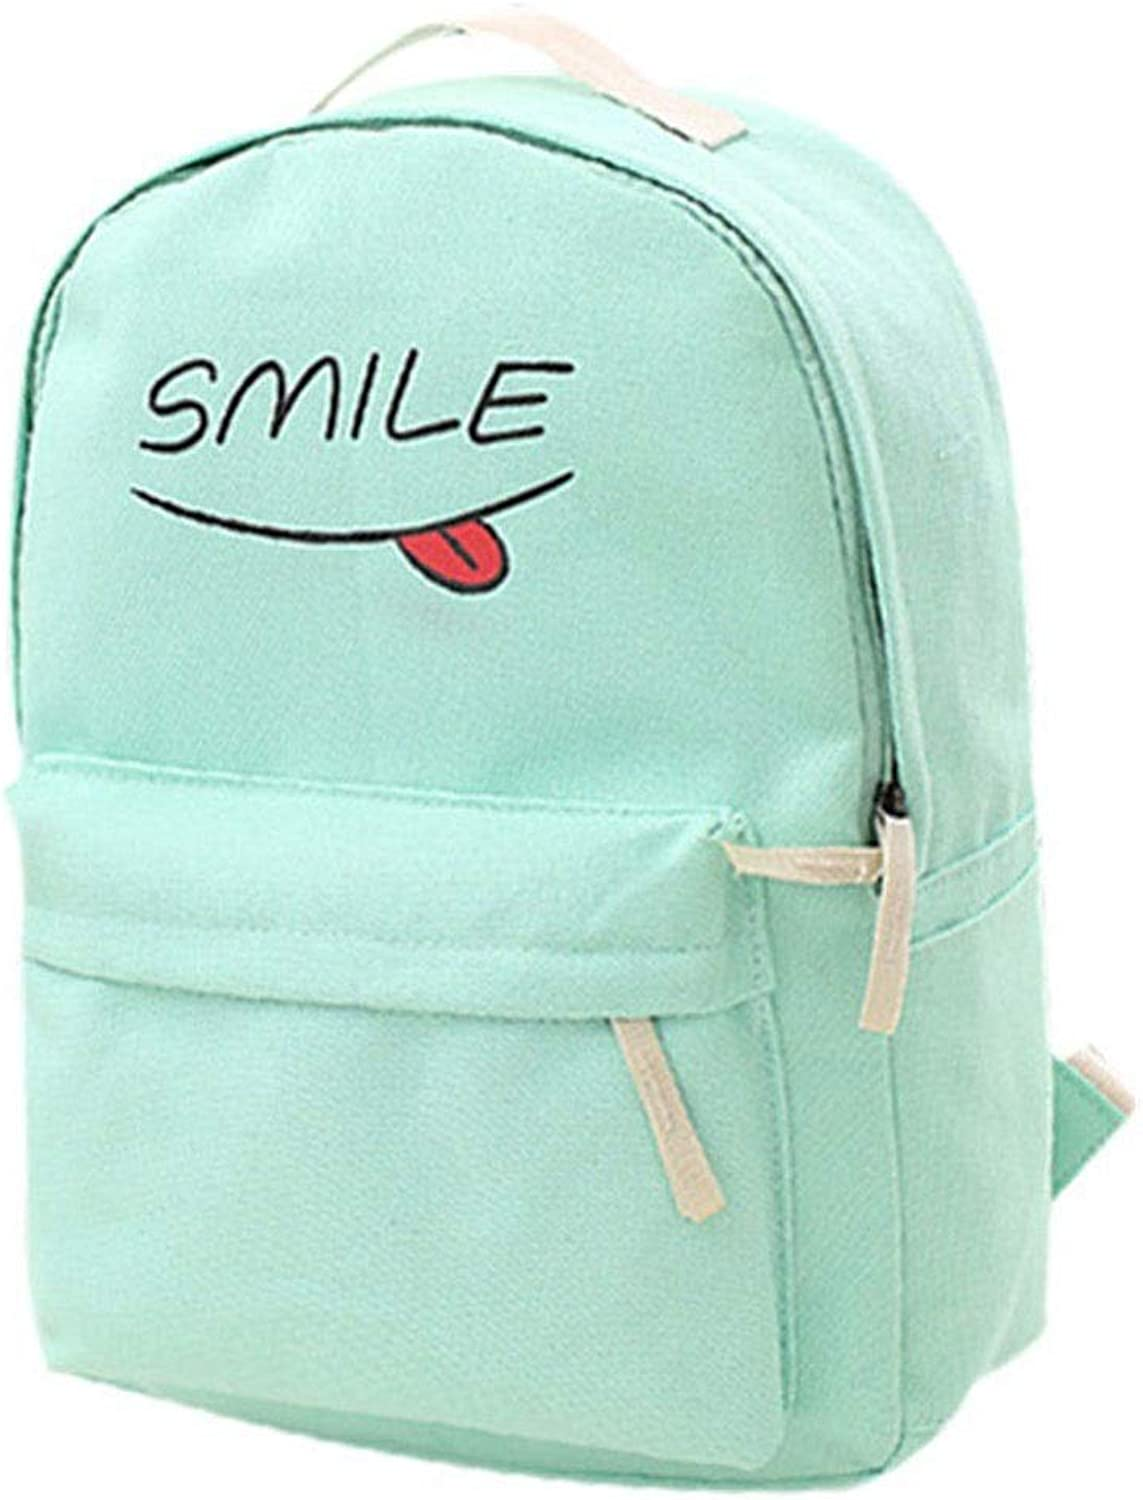 ZHIZUCHANGLE Tide cartoon backpack of the middle school student bag large capacity travel backpack college wind computer bag leisure bag,Canvas Smiling Face Backpack Rucksack School Satchel Hiking Bag